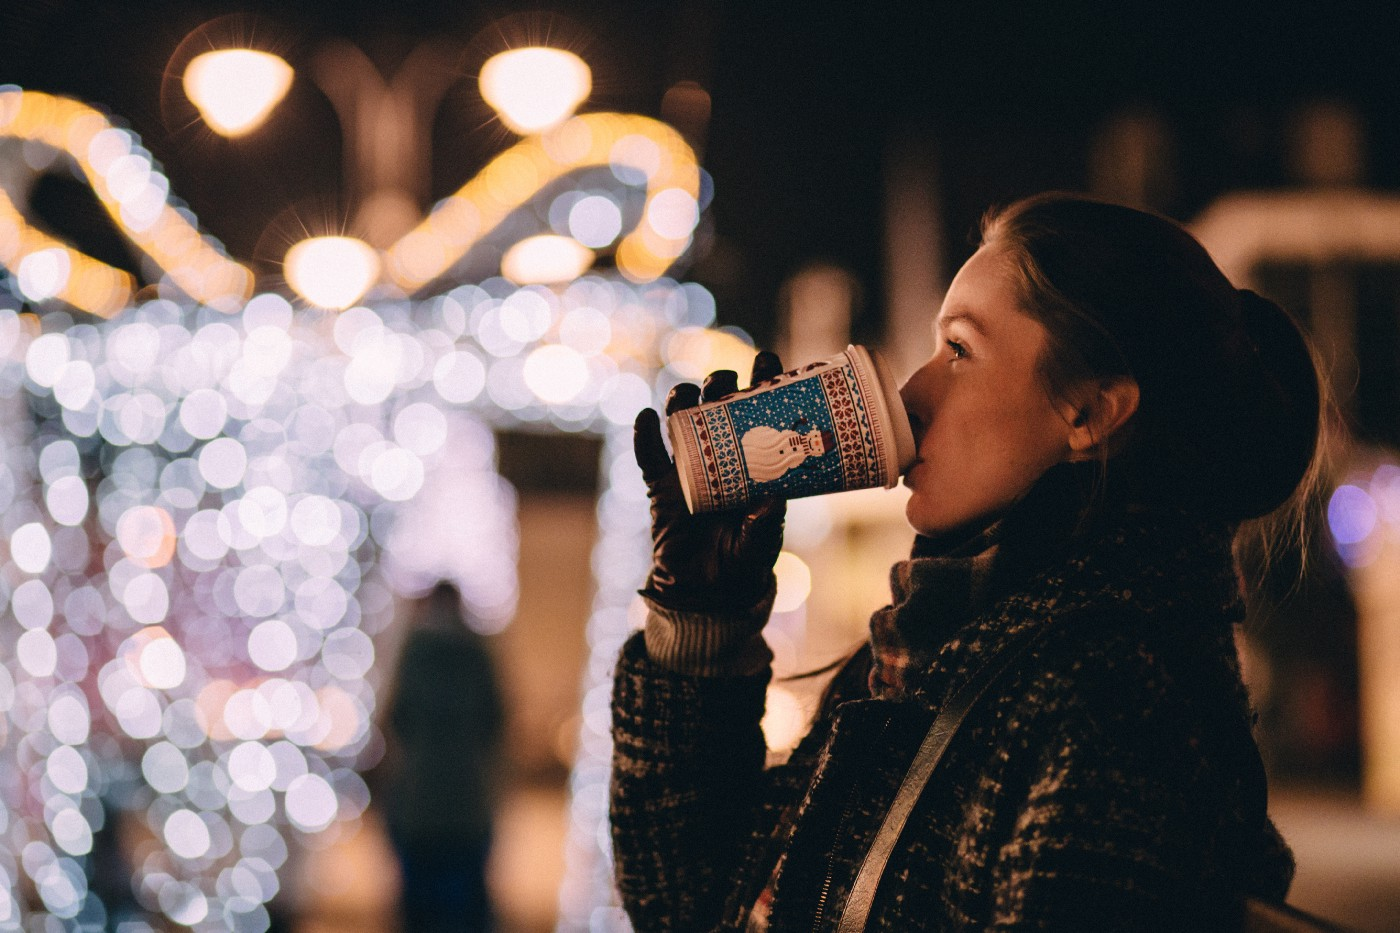 Woman drinking a coffee in a Christmas design cup with Christmas lights in background.